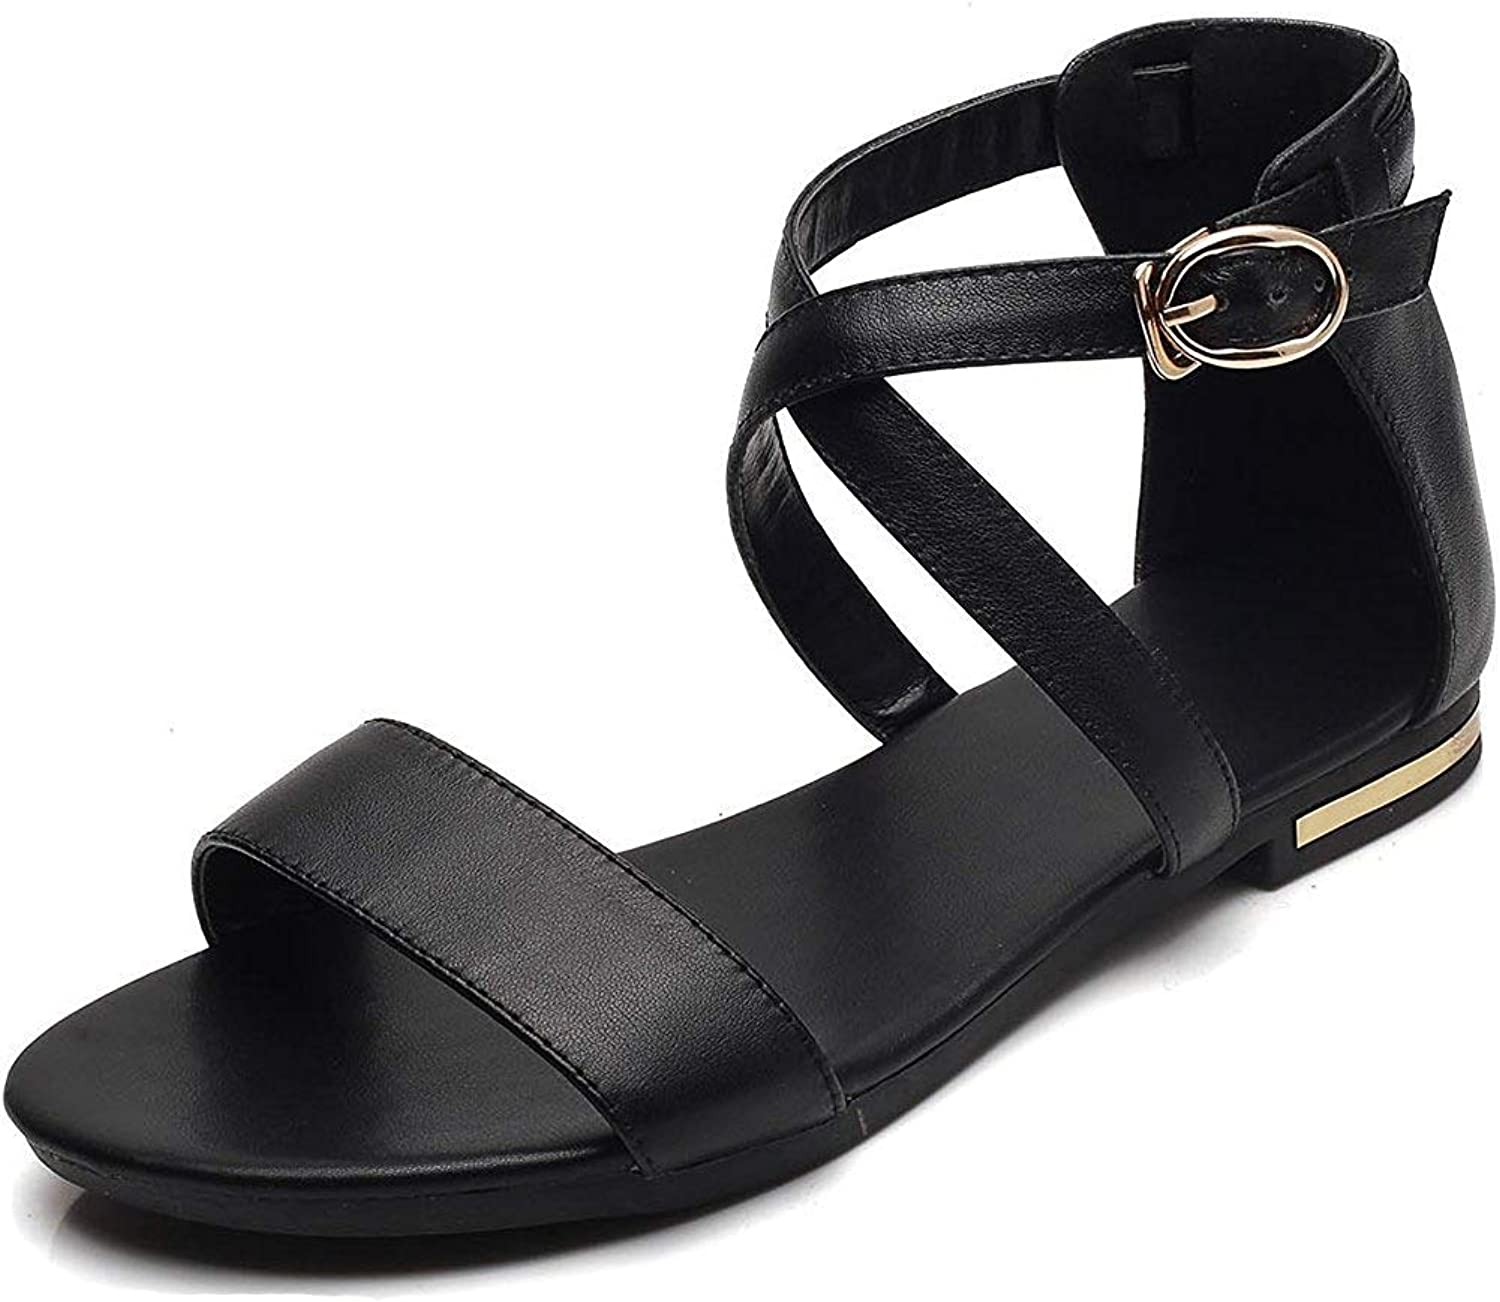 Unm Women's Open Toe Flat Sandals with Ankle Cross Strap - Buckled Comfort - Casual Faux Leather